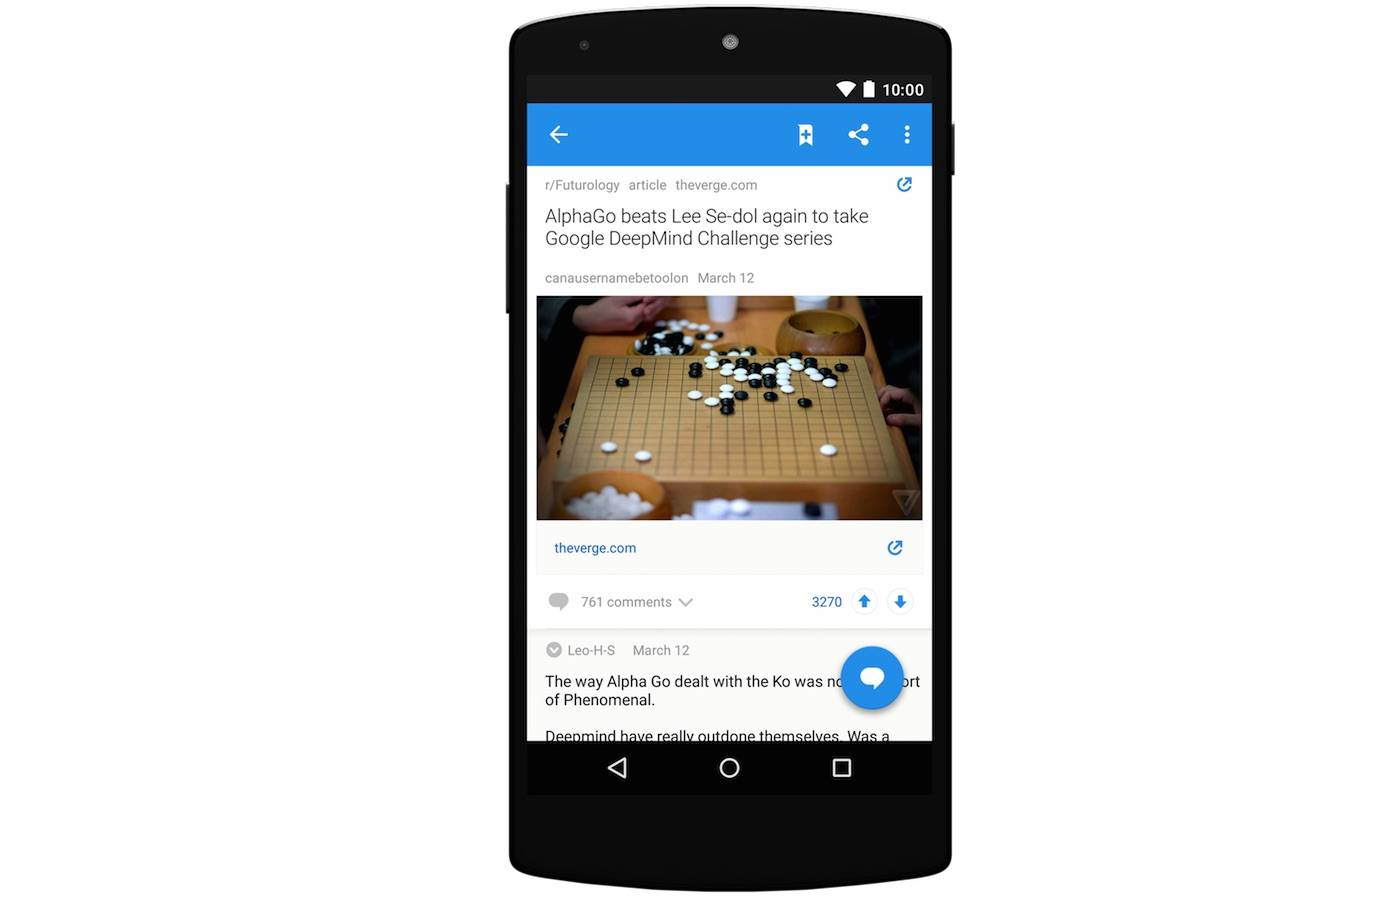 Official Reddit app for Android is finally here, ready for public